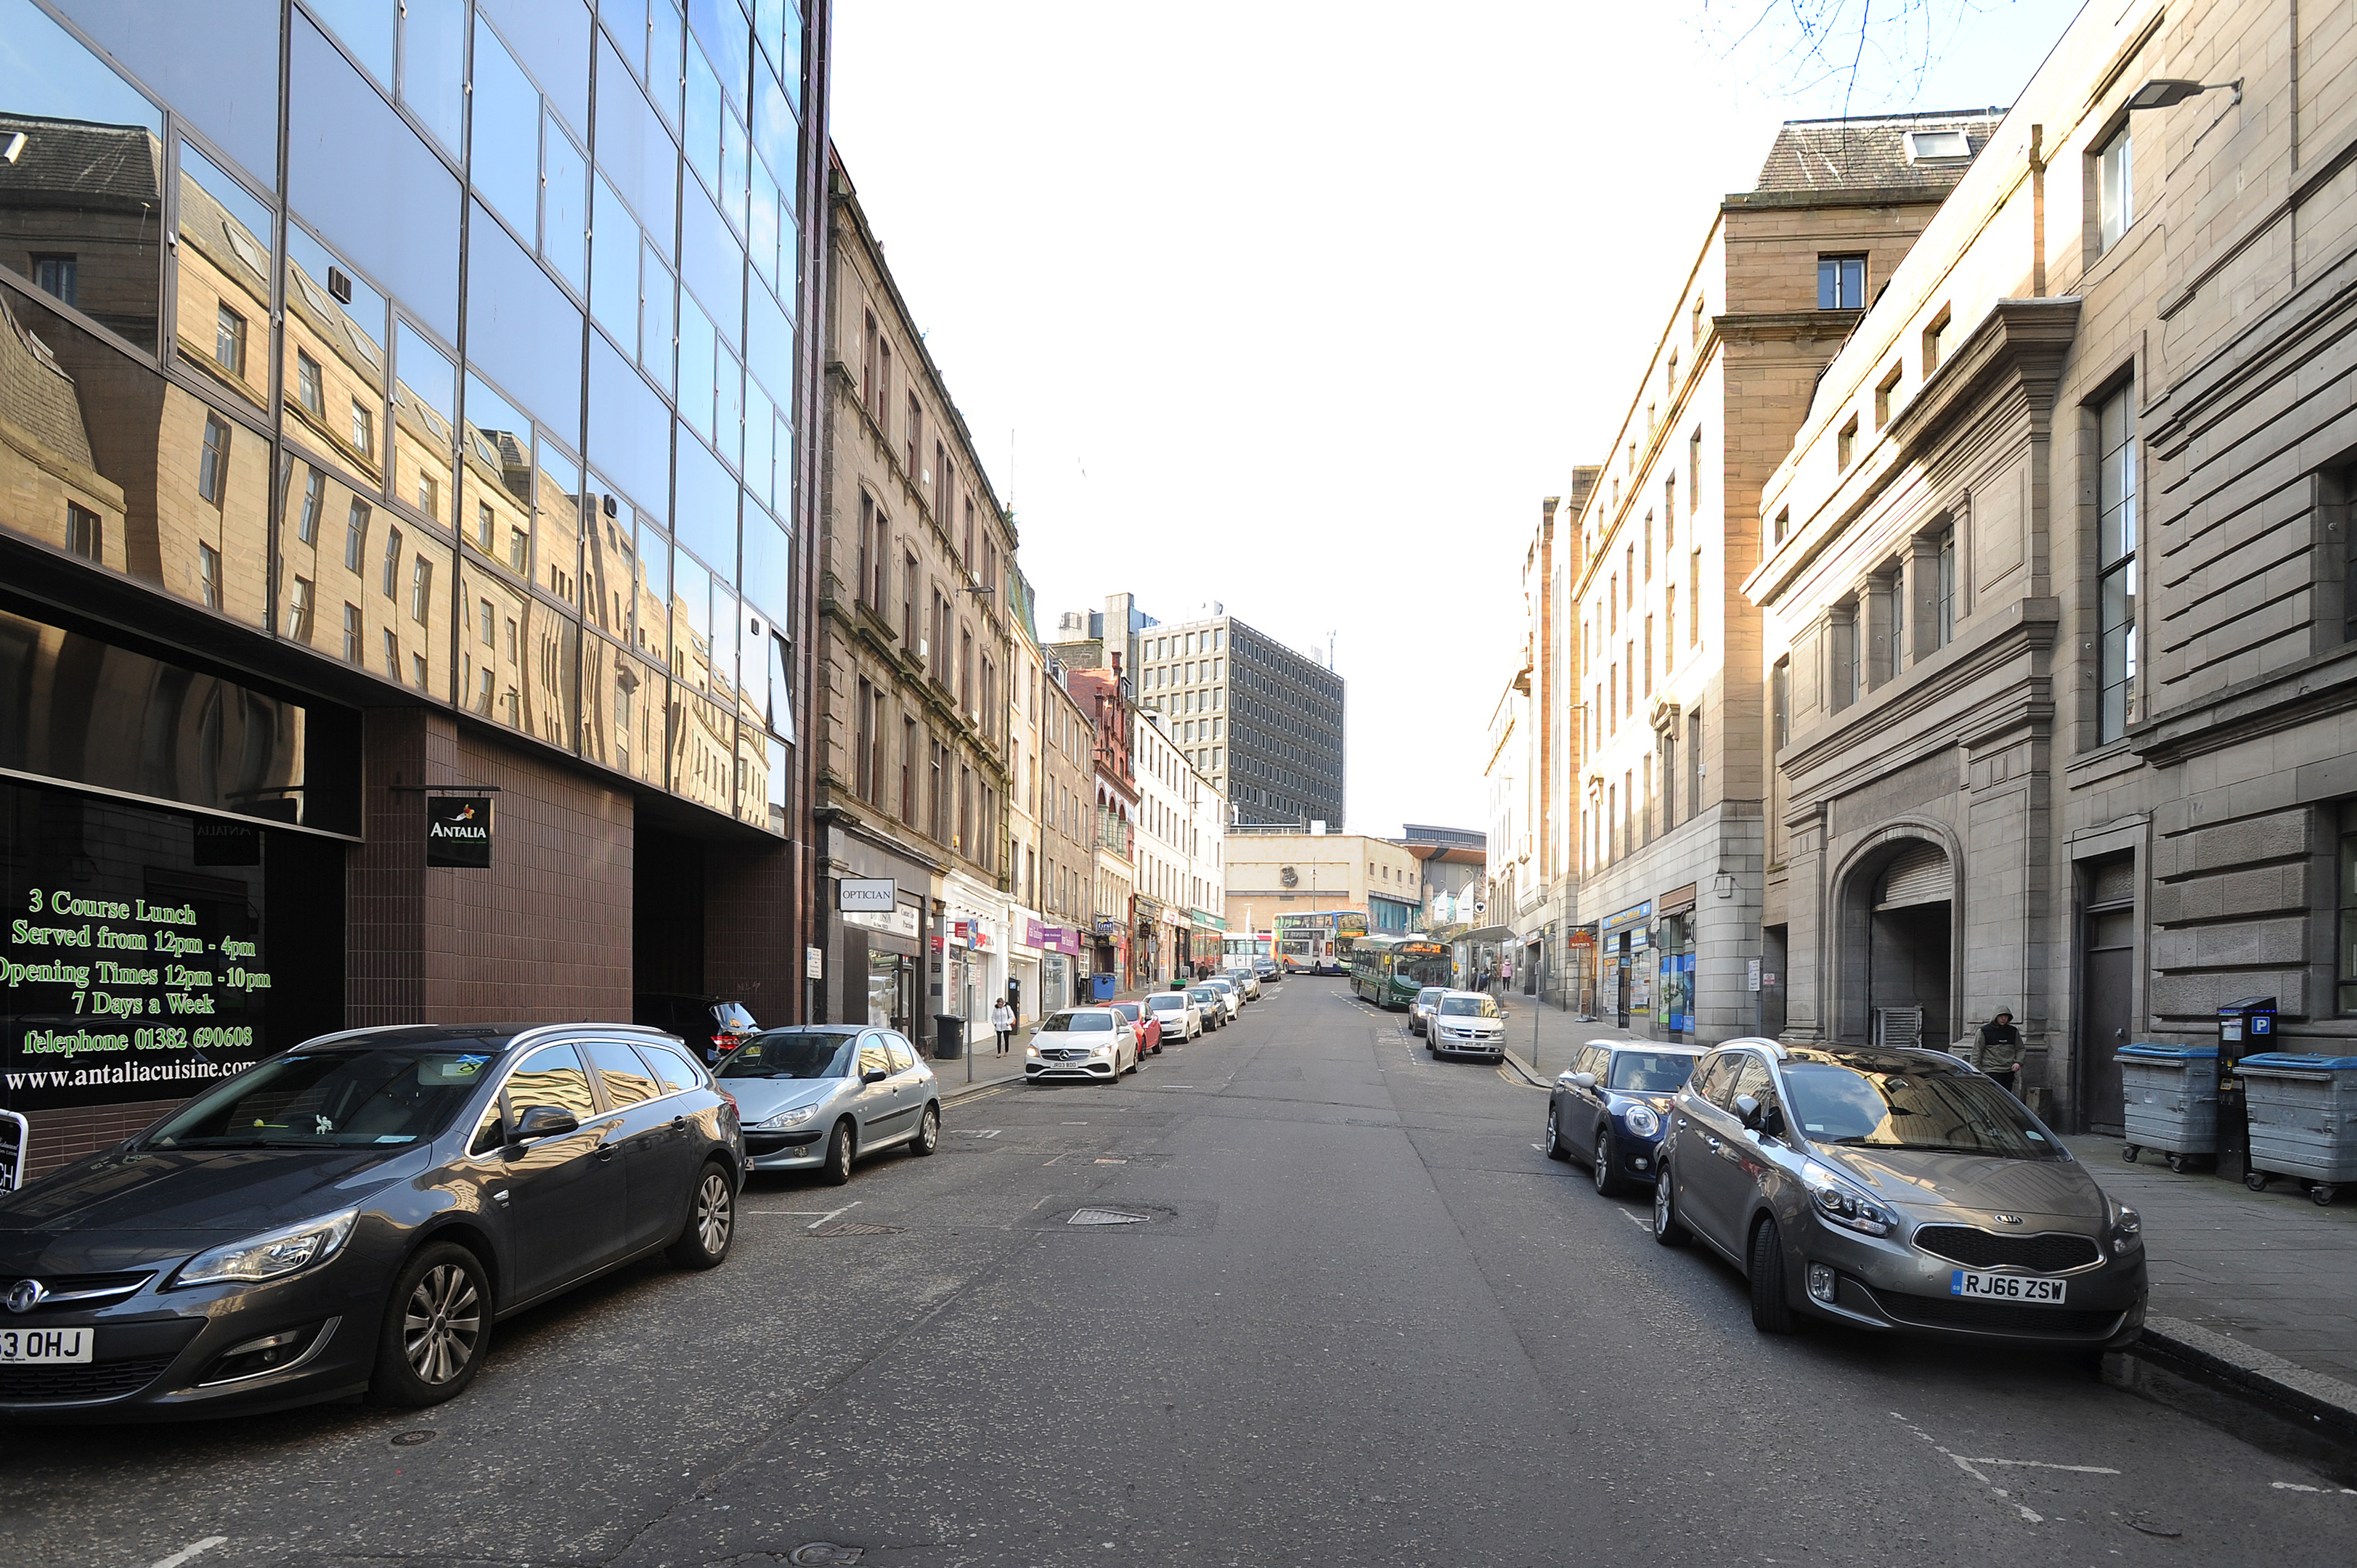 Crichton Street will be among the streets closed for resurfacing work in April.